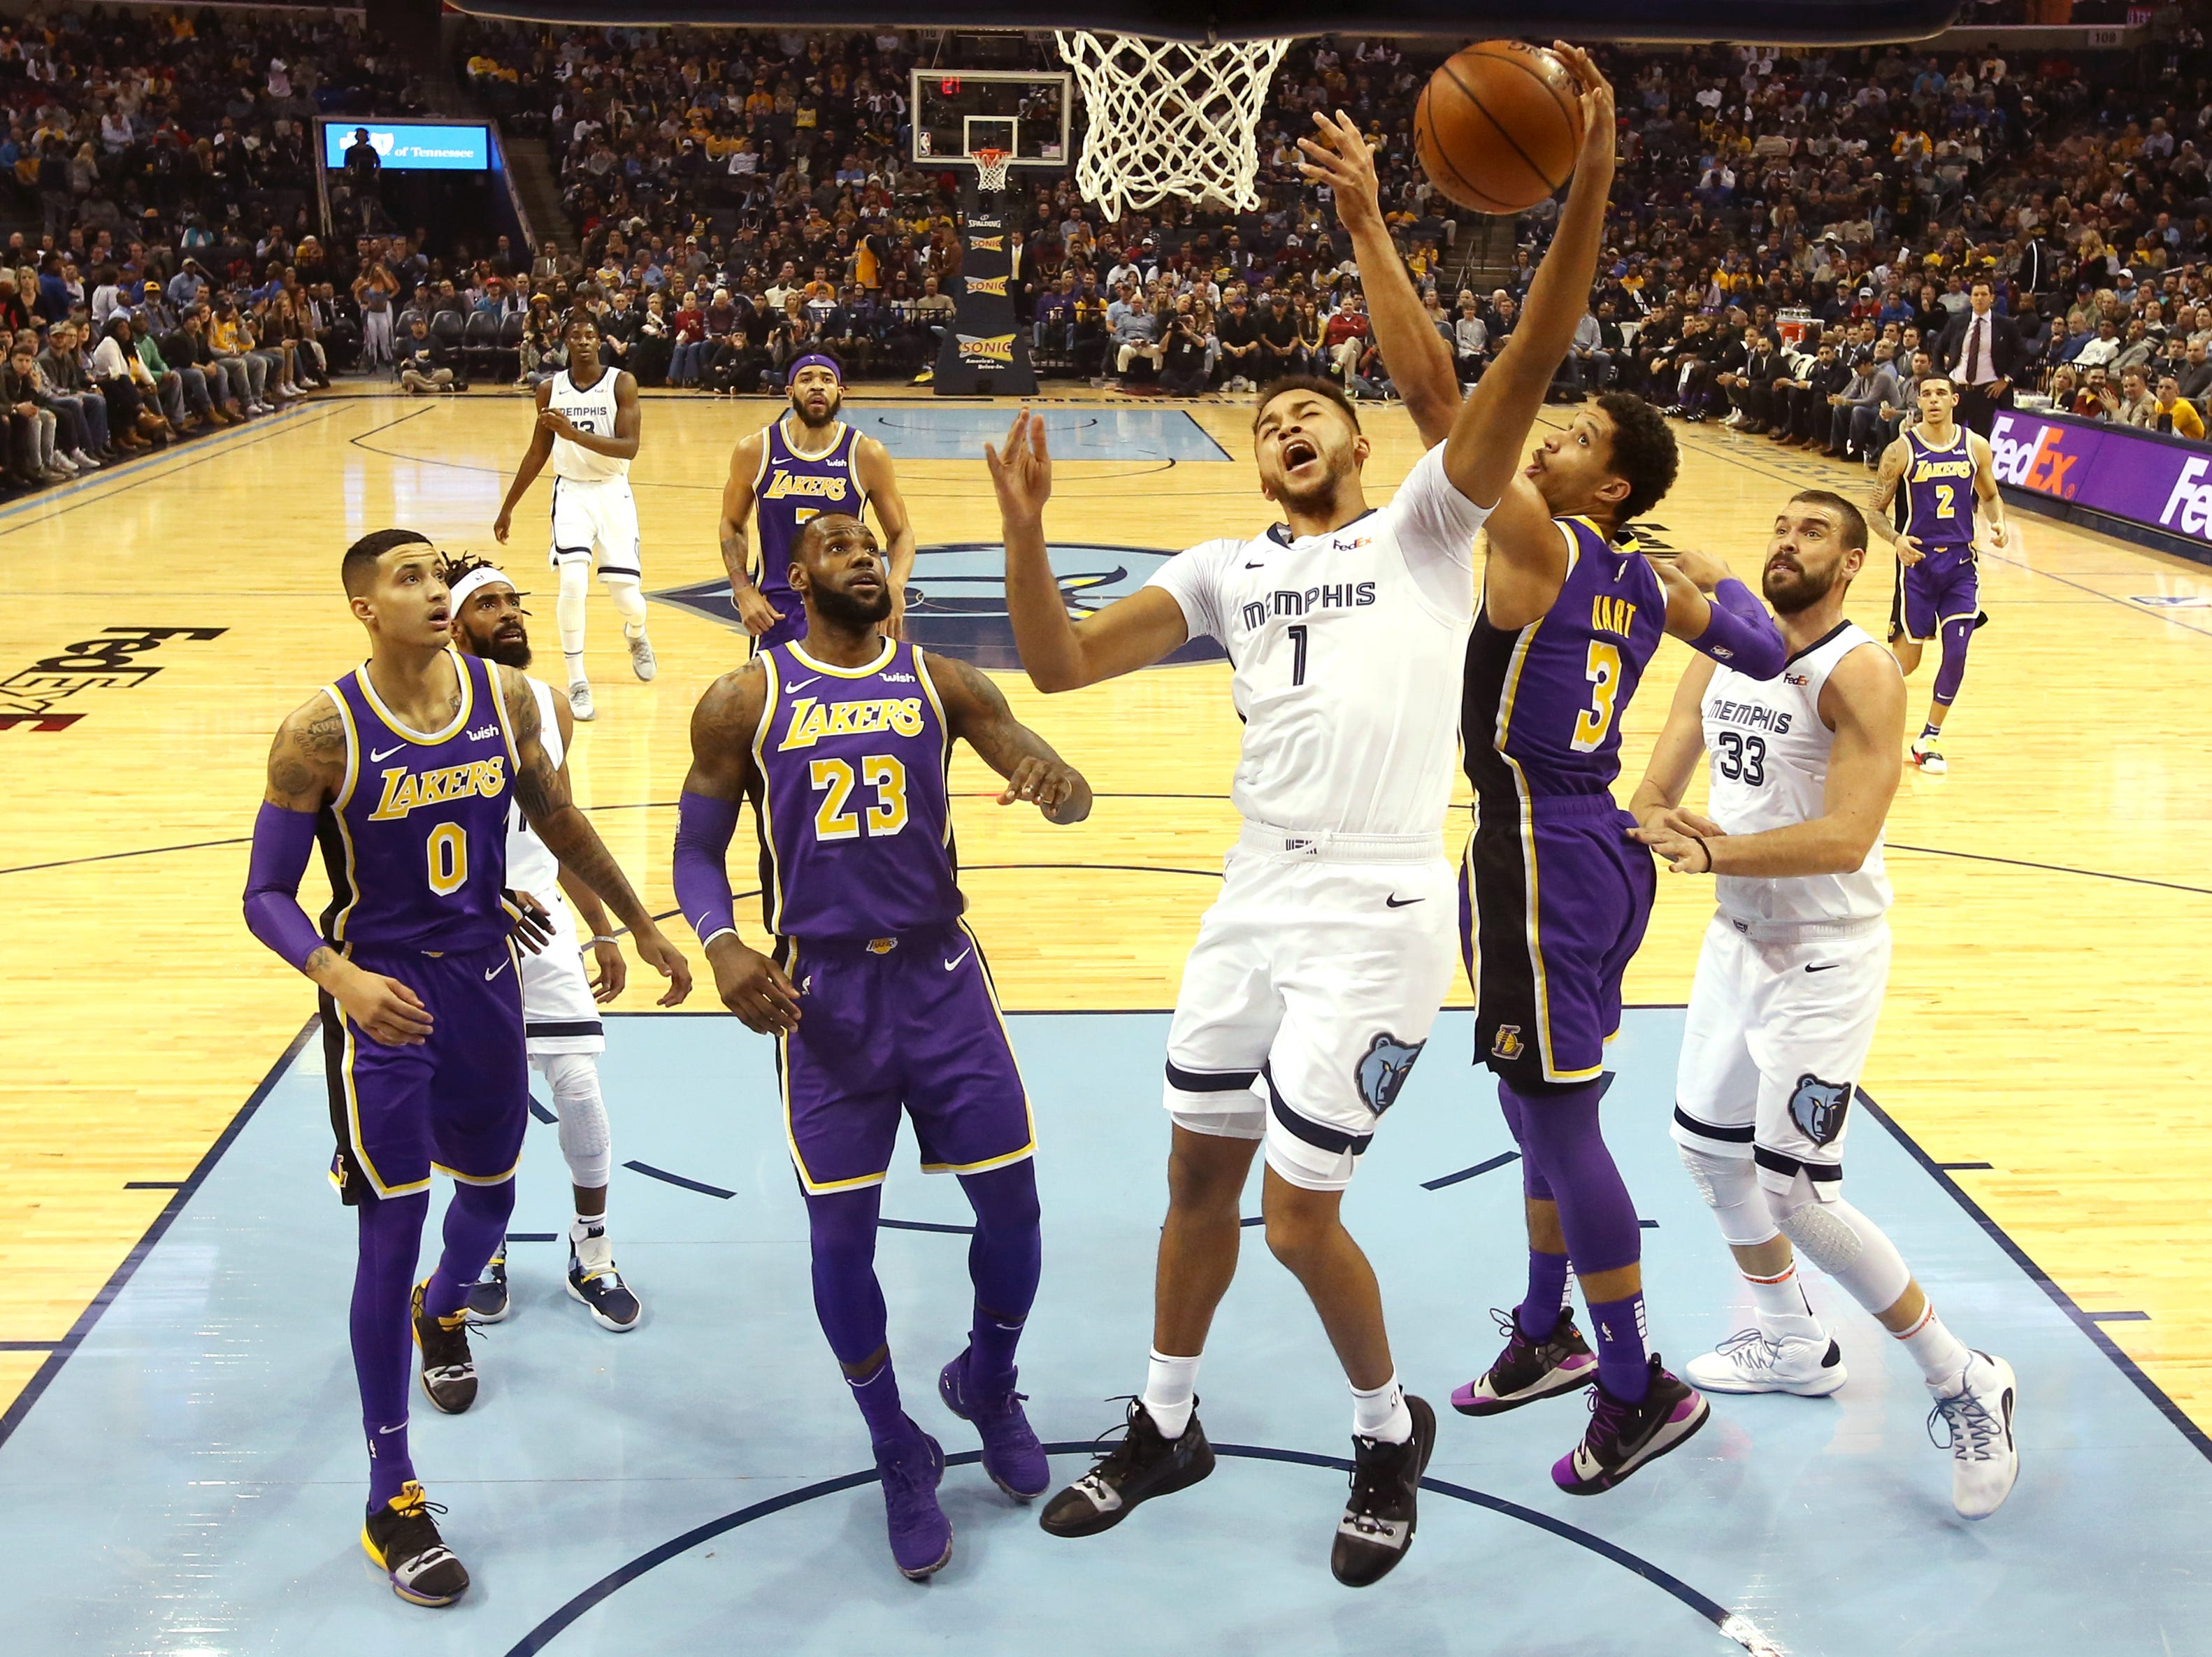 Memphis Grizzlies Kyle Anderson tries to lay the ball up past Los Angeles Lakers guard Josh Hart during their game at the FedExForum on Saturday, Dec. 8, 2018.